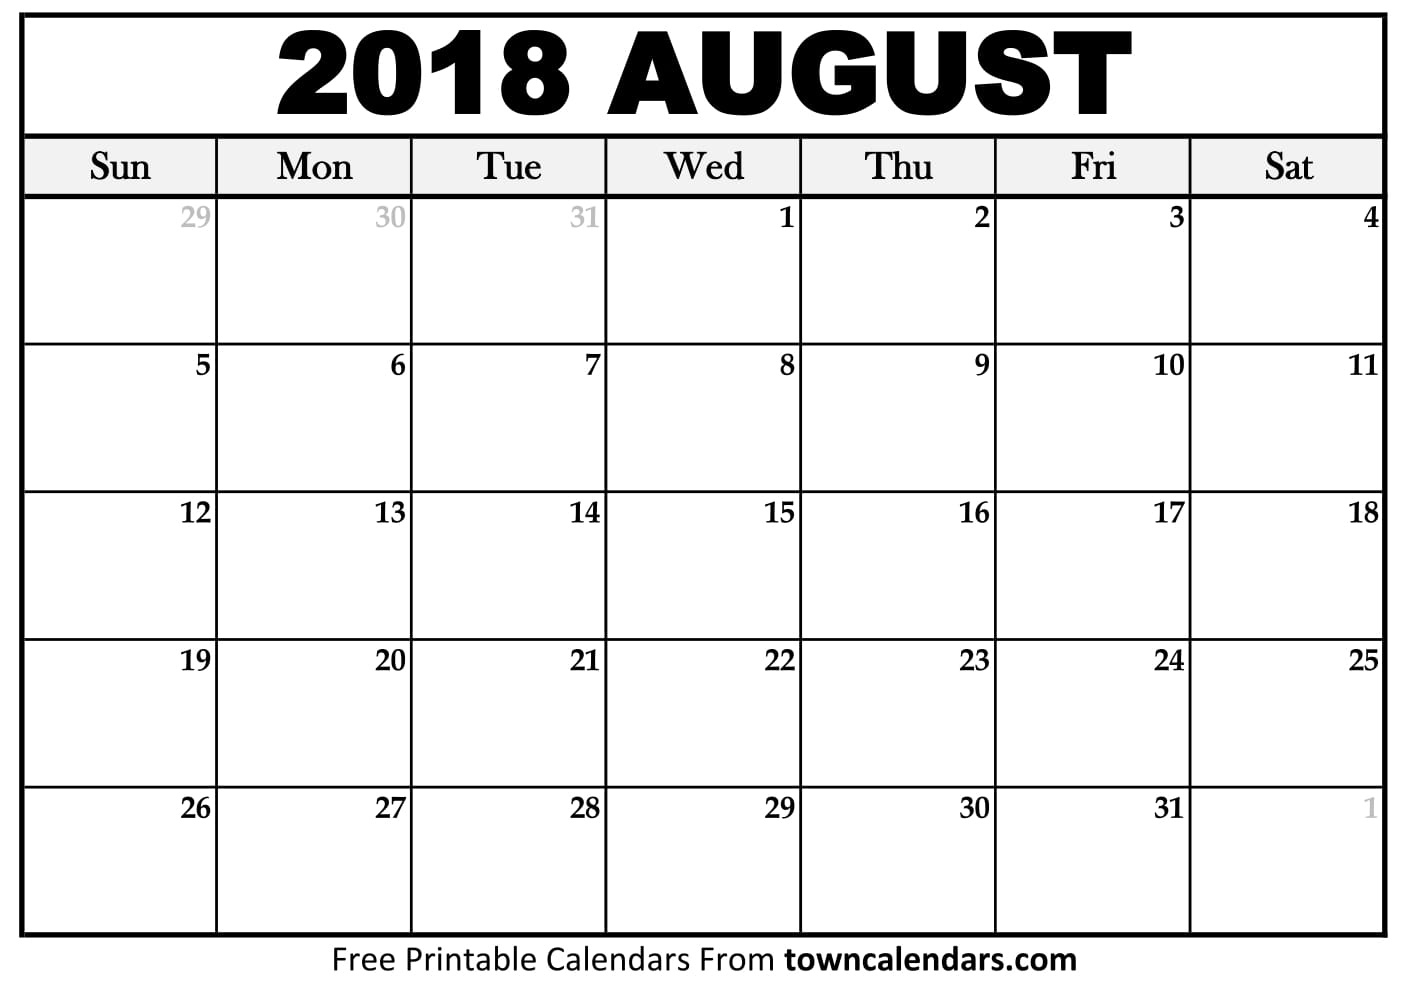 Printable August 2018 Calendar - Towncalendars  Picture Of August On Calendar